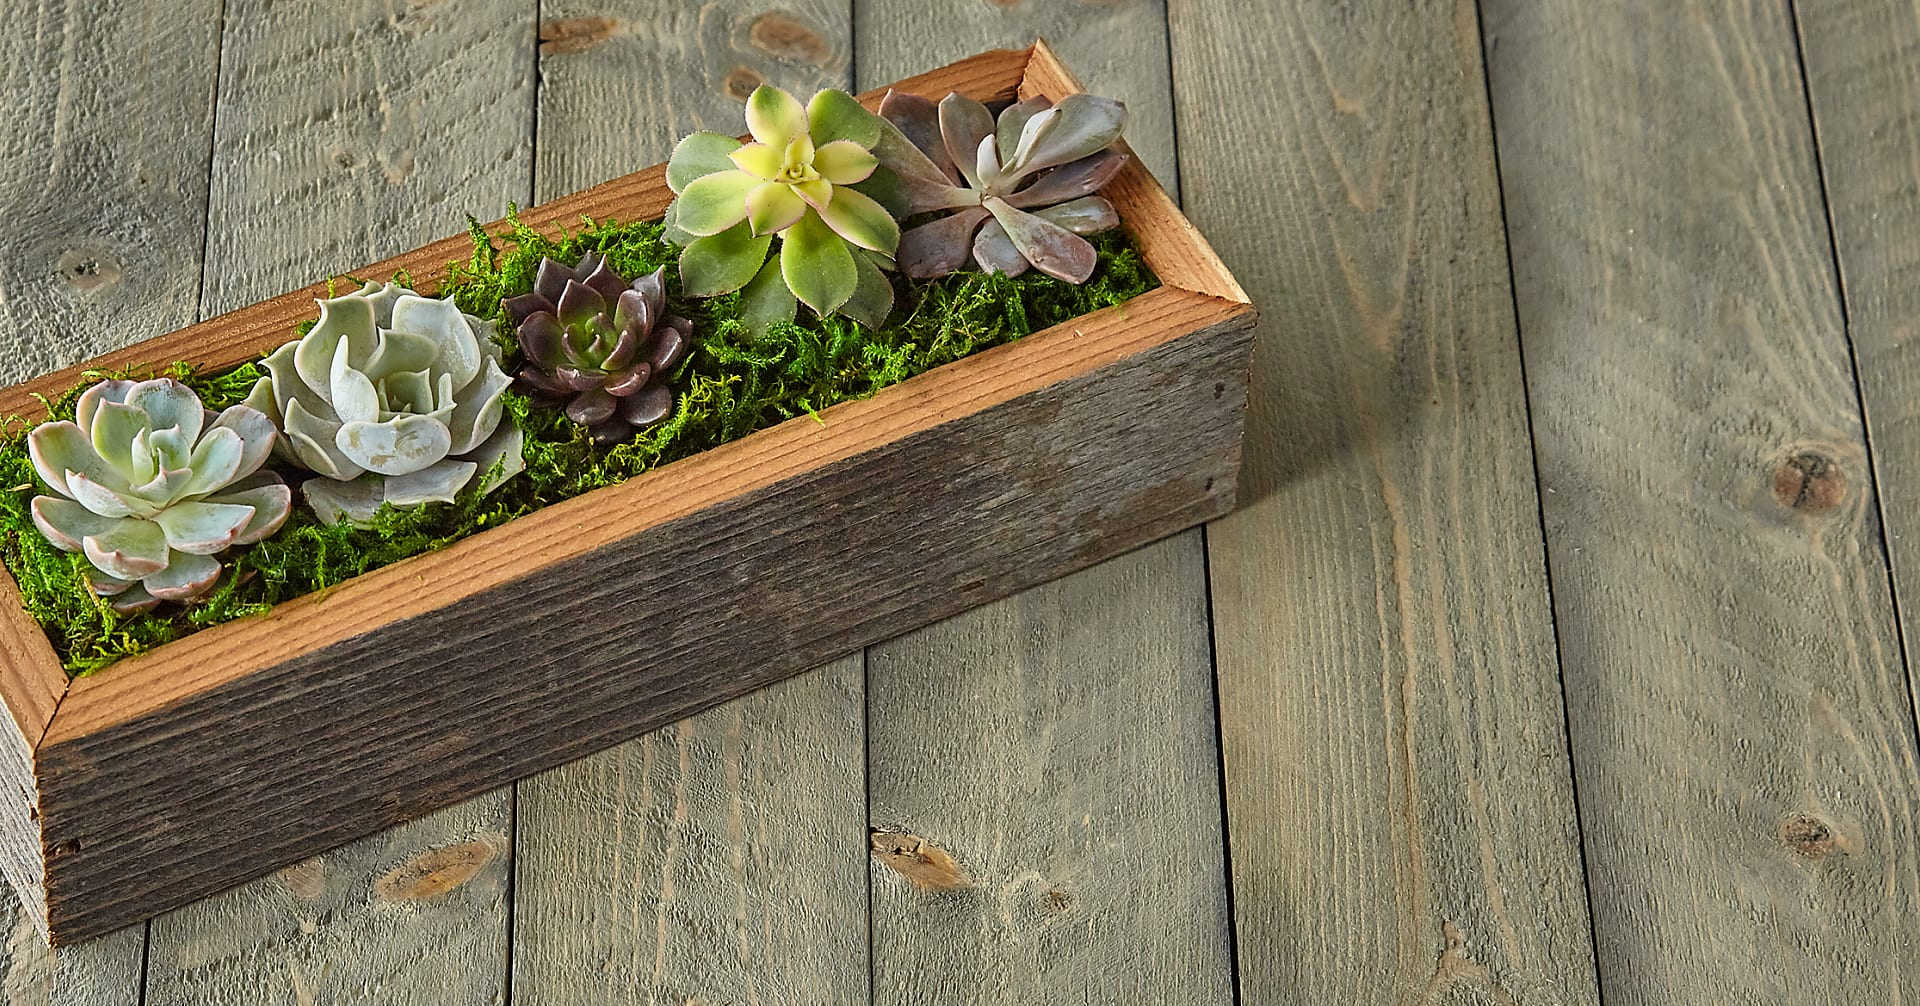 Succulent Garden DIY Kit - Image 1 Of 8